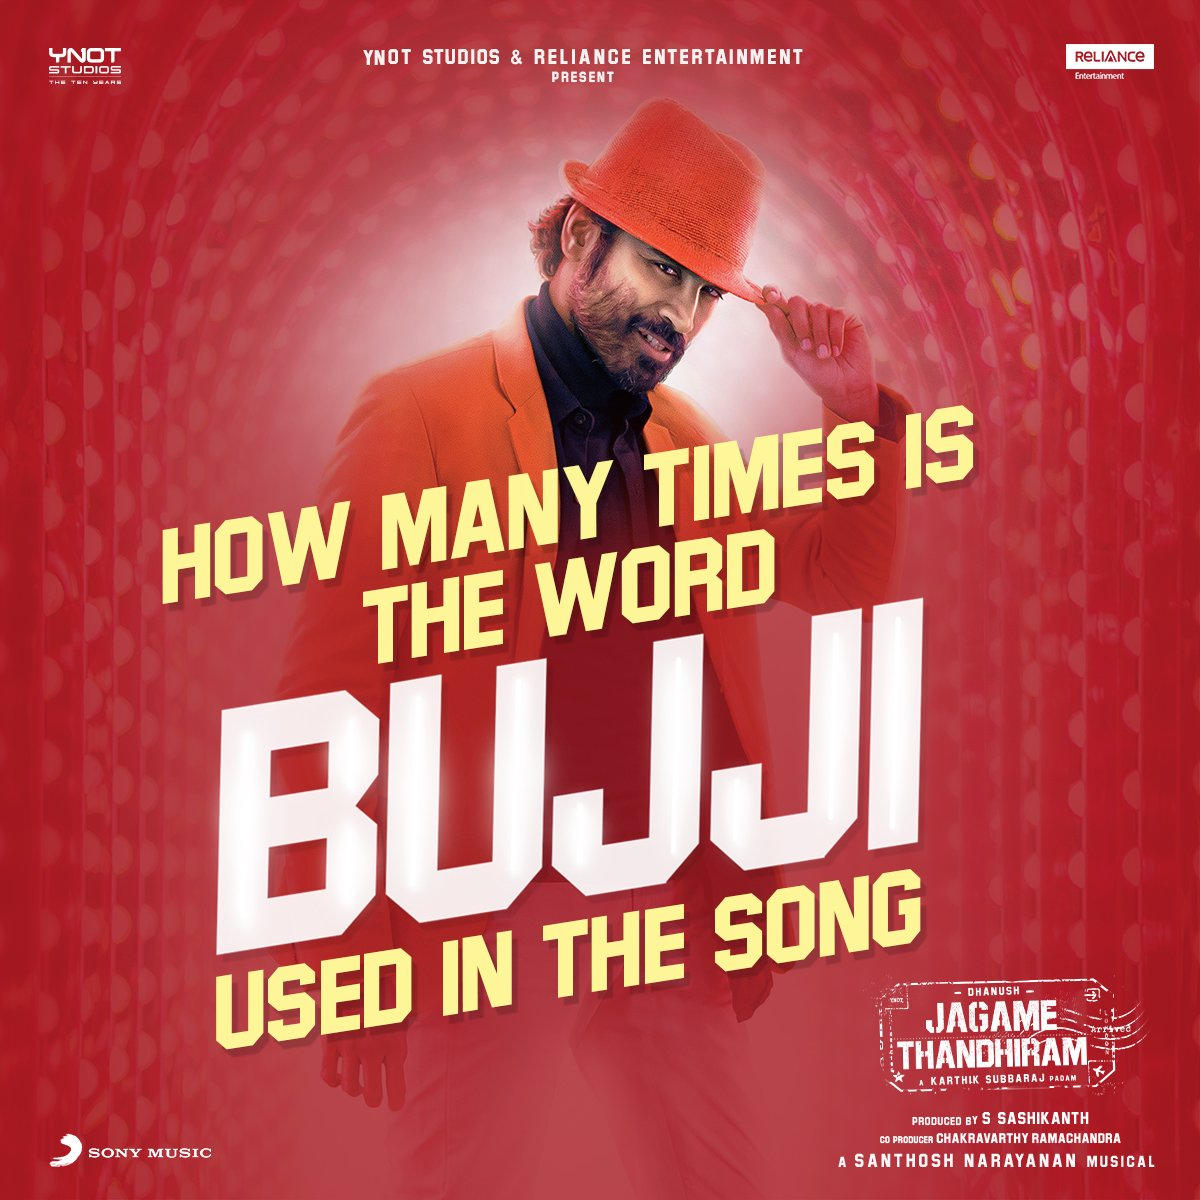 Tell us in the comments! 🔥♥️   #Bujji from #JagameThandhiram  ➡️ https://t.co/ouTD3Pcqof  #JTTamil #BeatsOfBujji https://t.co/ENLnSZKhXF